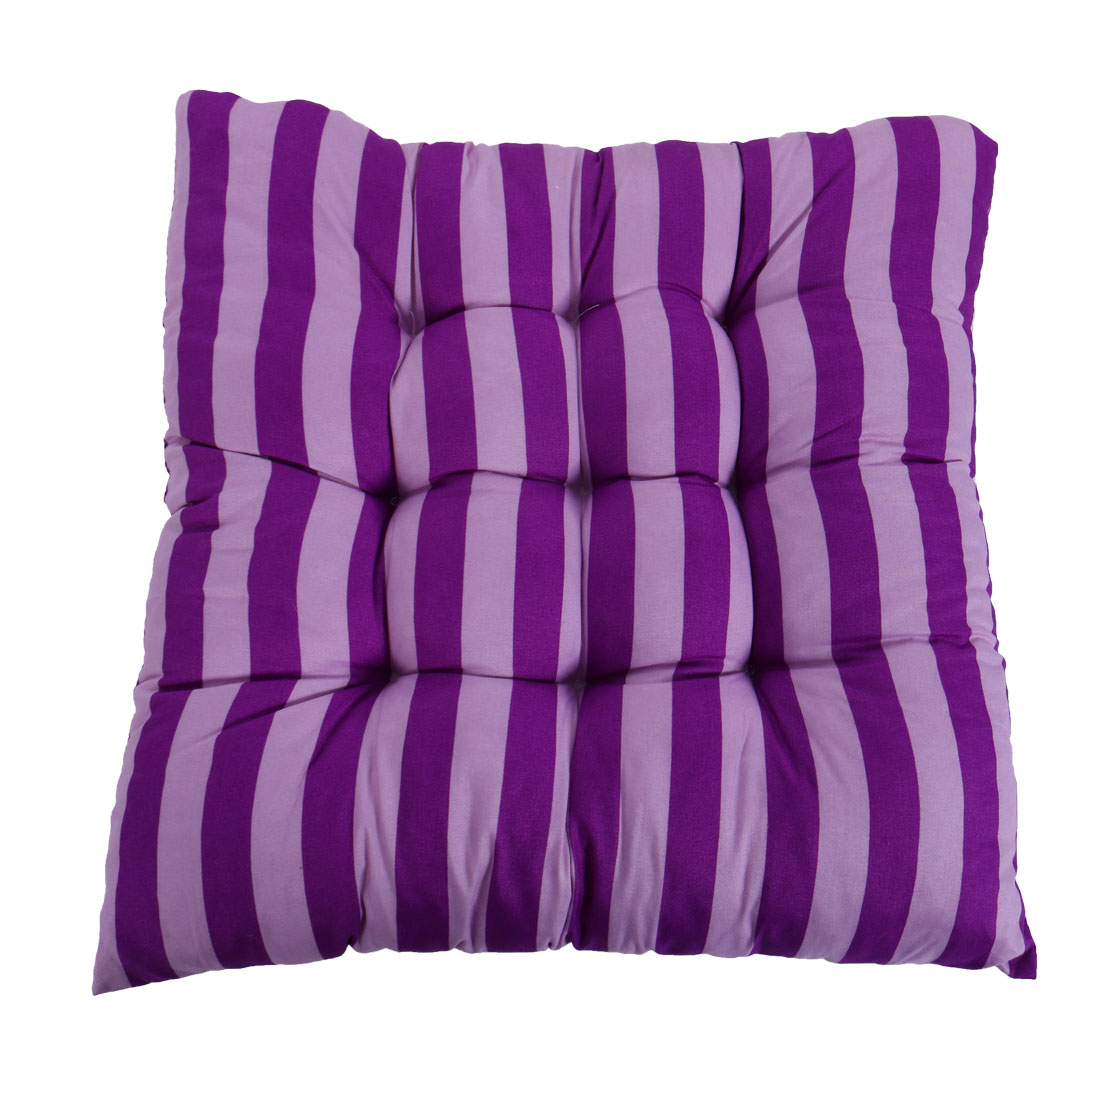 Home Chair Sofa Cotton Blends Square Stripe Stamp Design Soft Seat Cushion Purple and Light Purple 39cm x 39cm